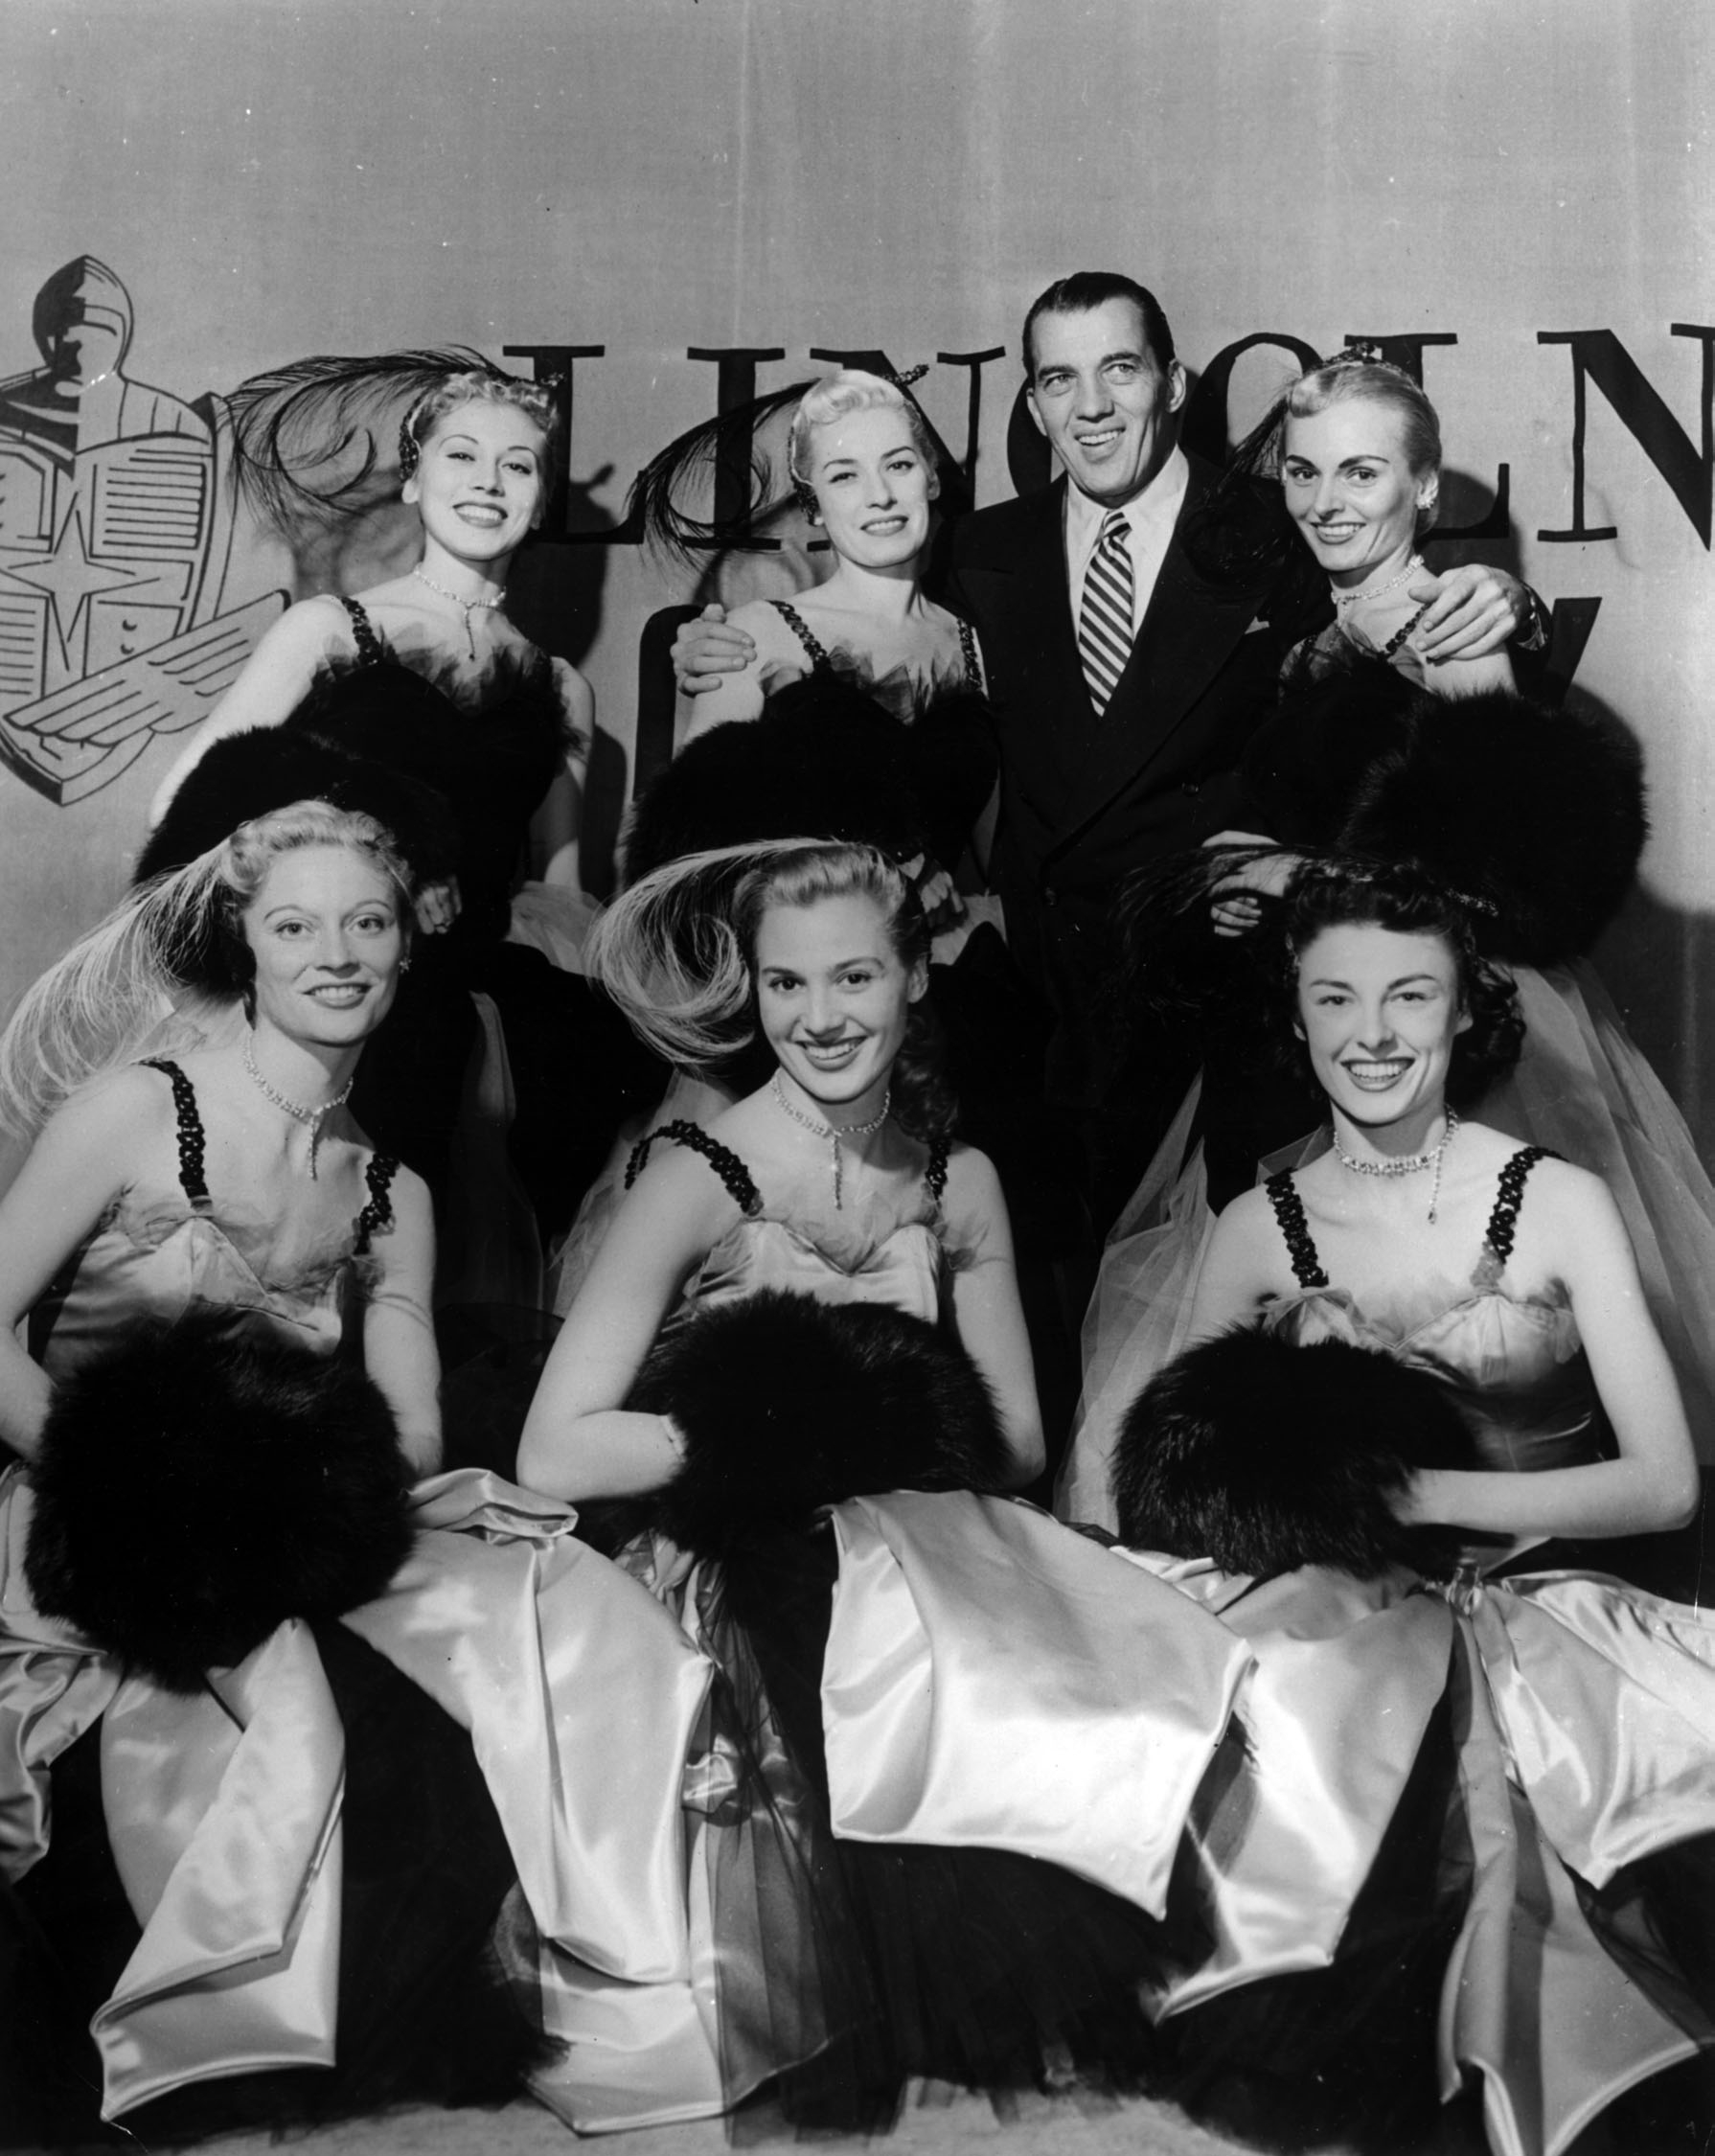 Ed Sullivan with the Toastettes